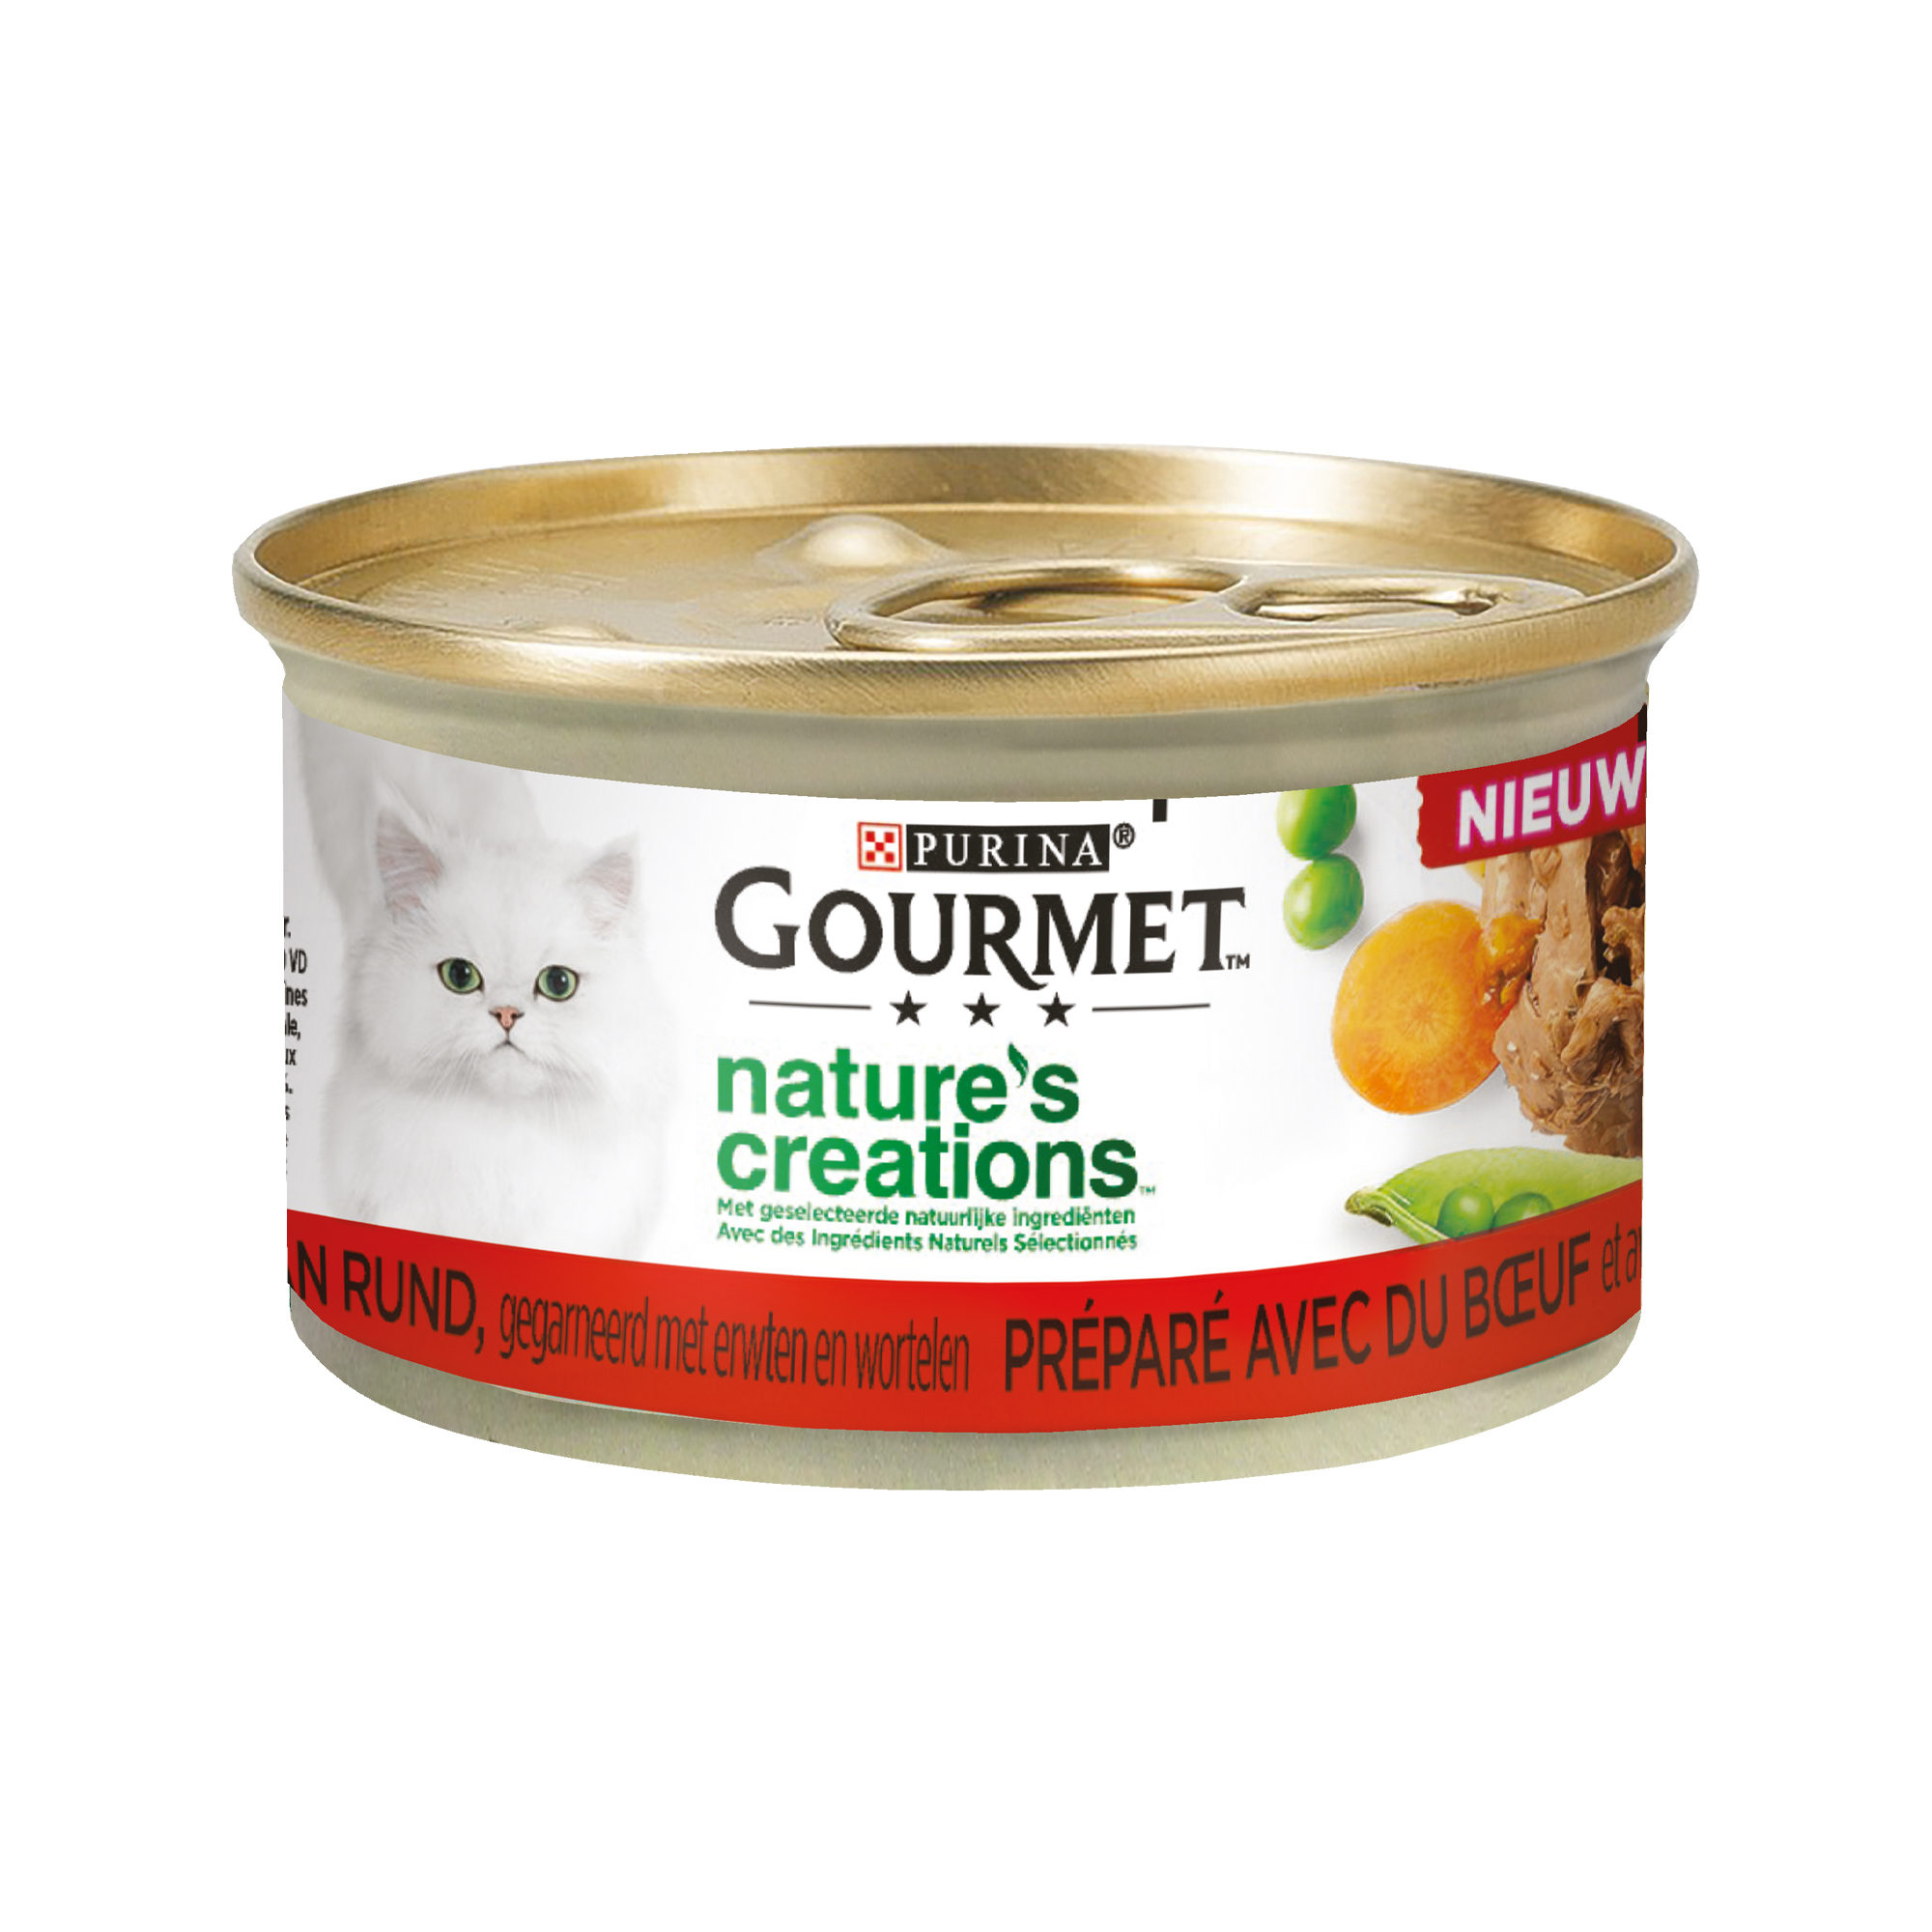 Gourmet Nature's Creations - Rind